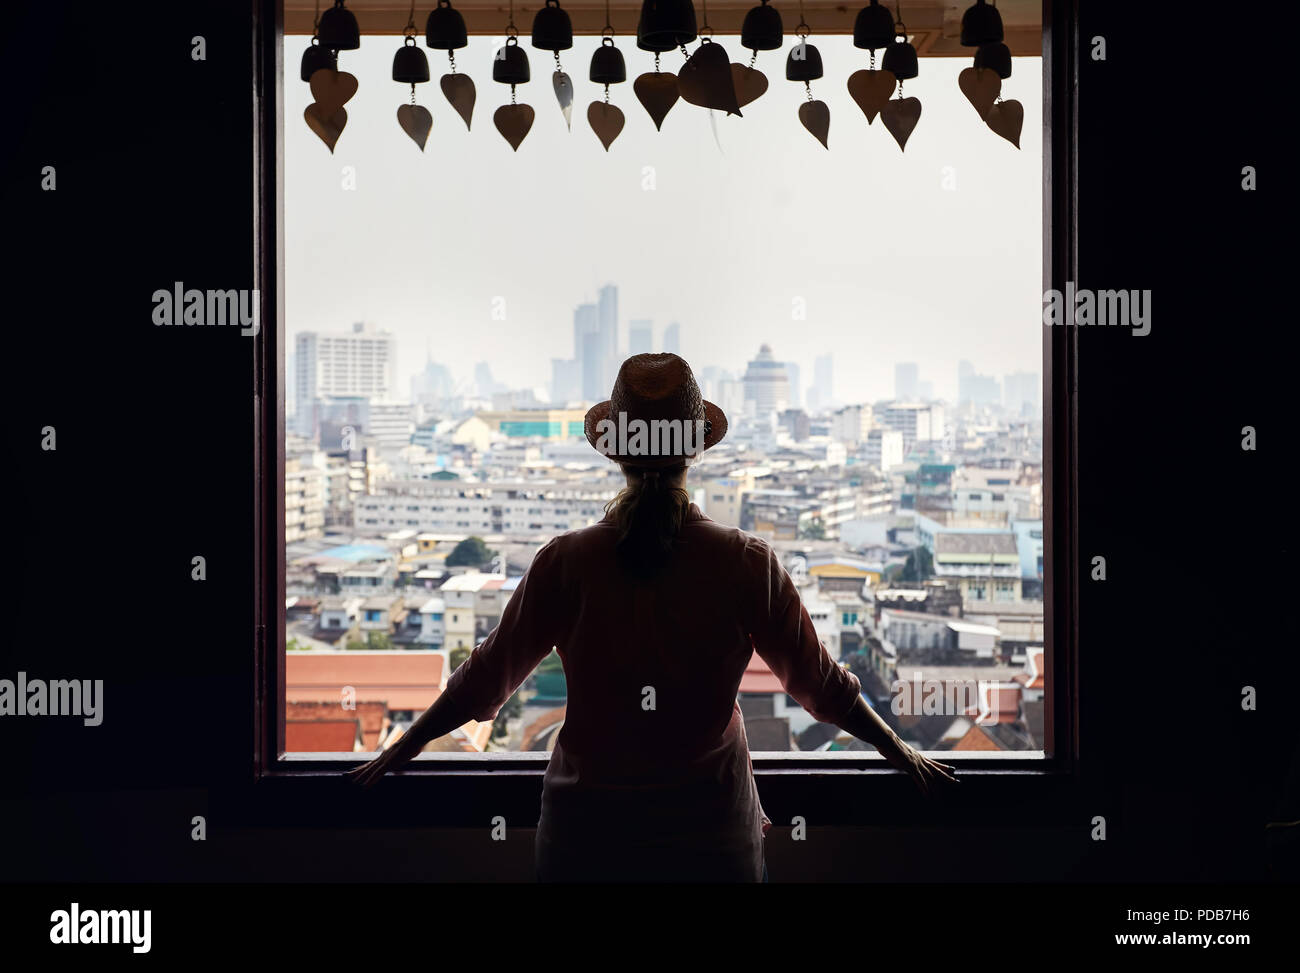 Silhouette of tourist woman looking in window to Bangkok city view of skyscrapers business district from Golden Mountain Pagoda Wat Saket at overcast  Stock Photo